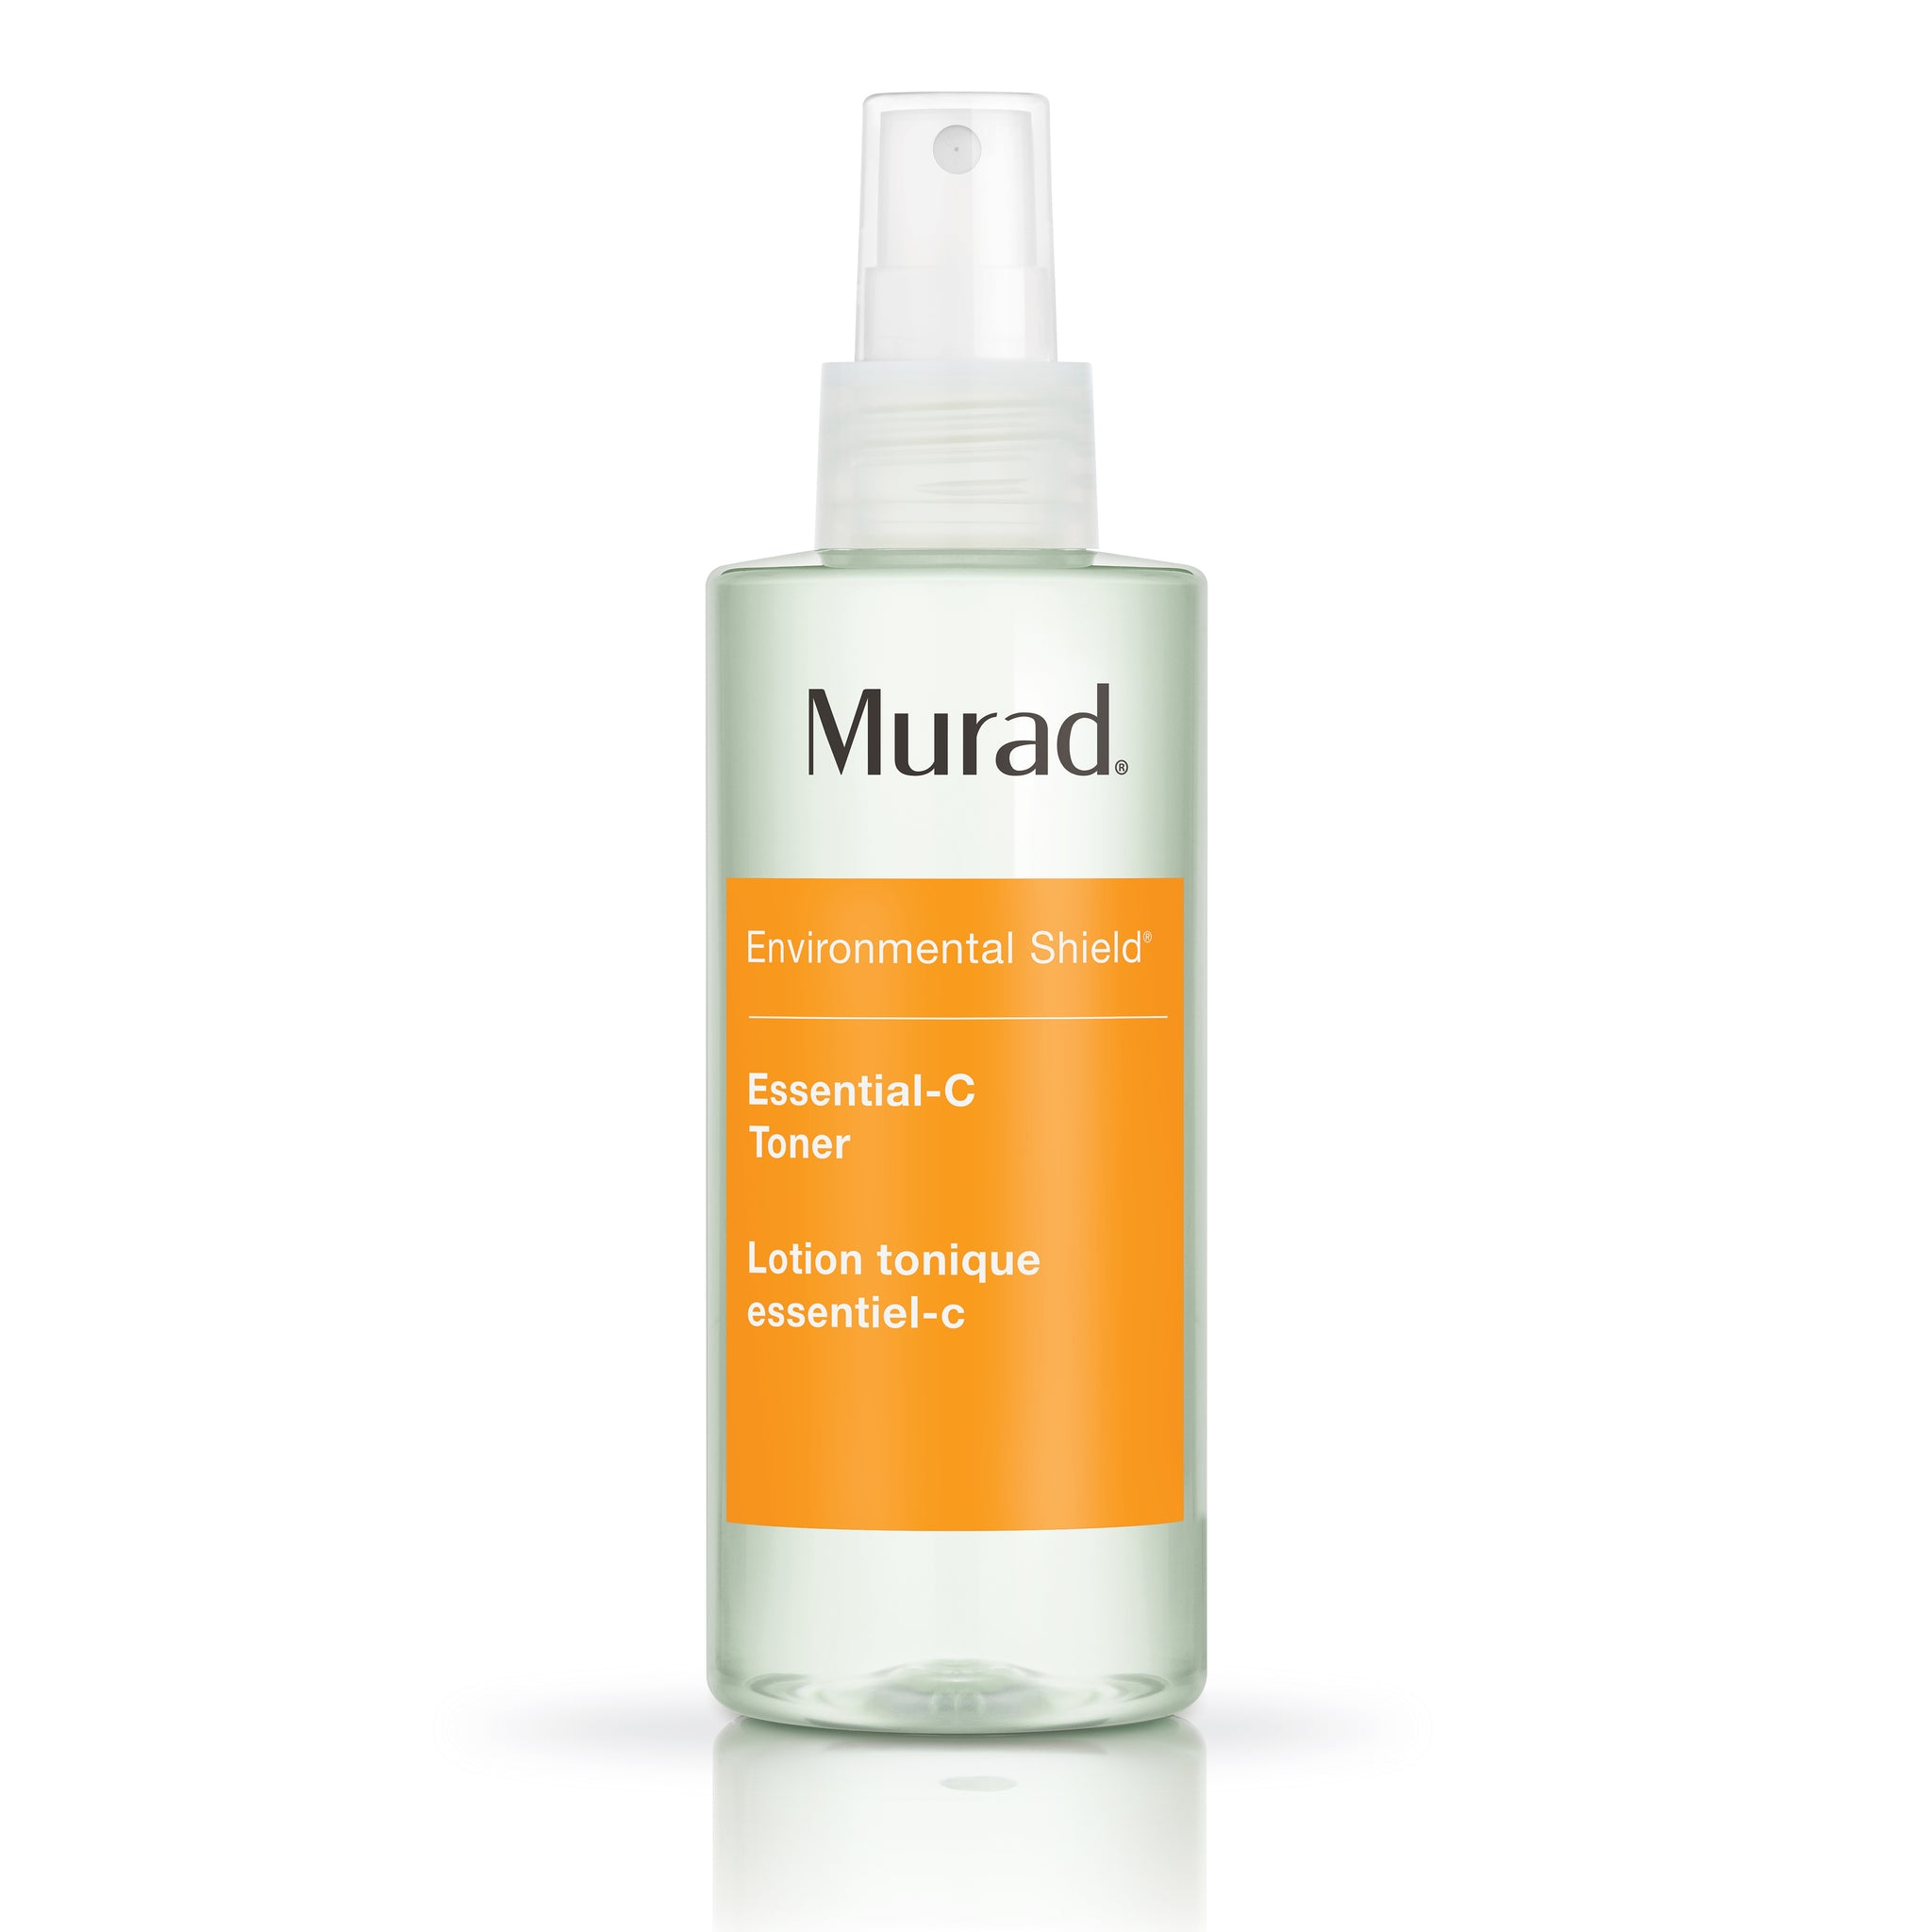 Murad Environmental Shield Essential C Toner